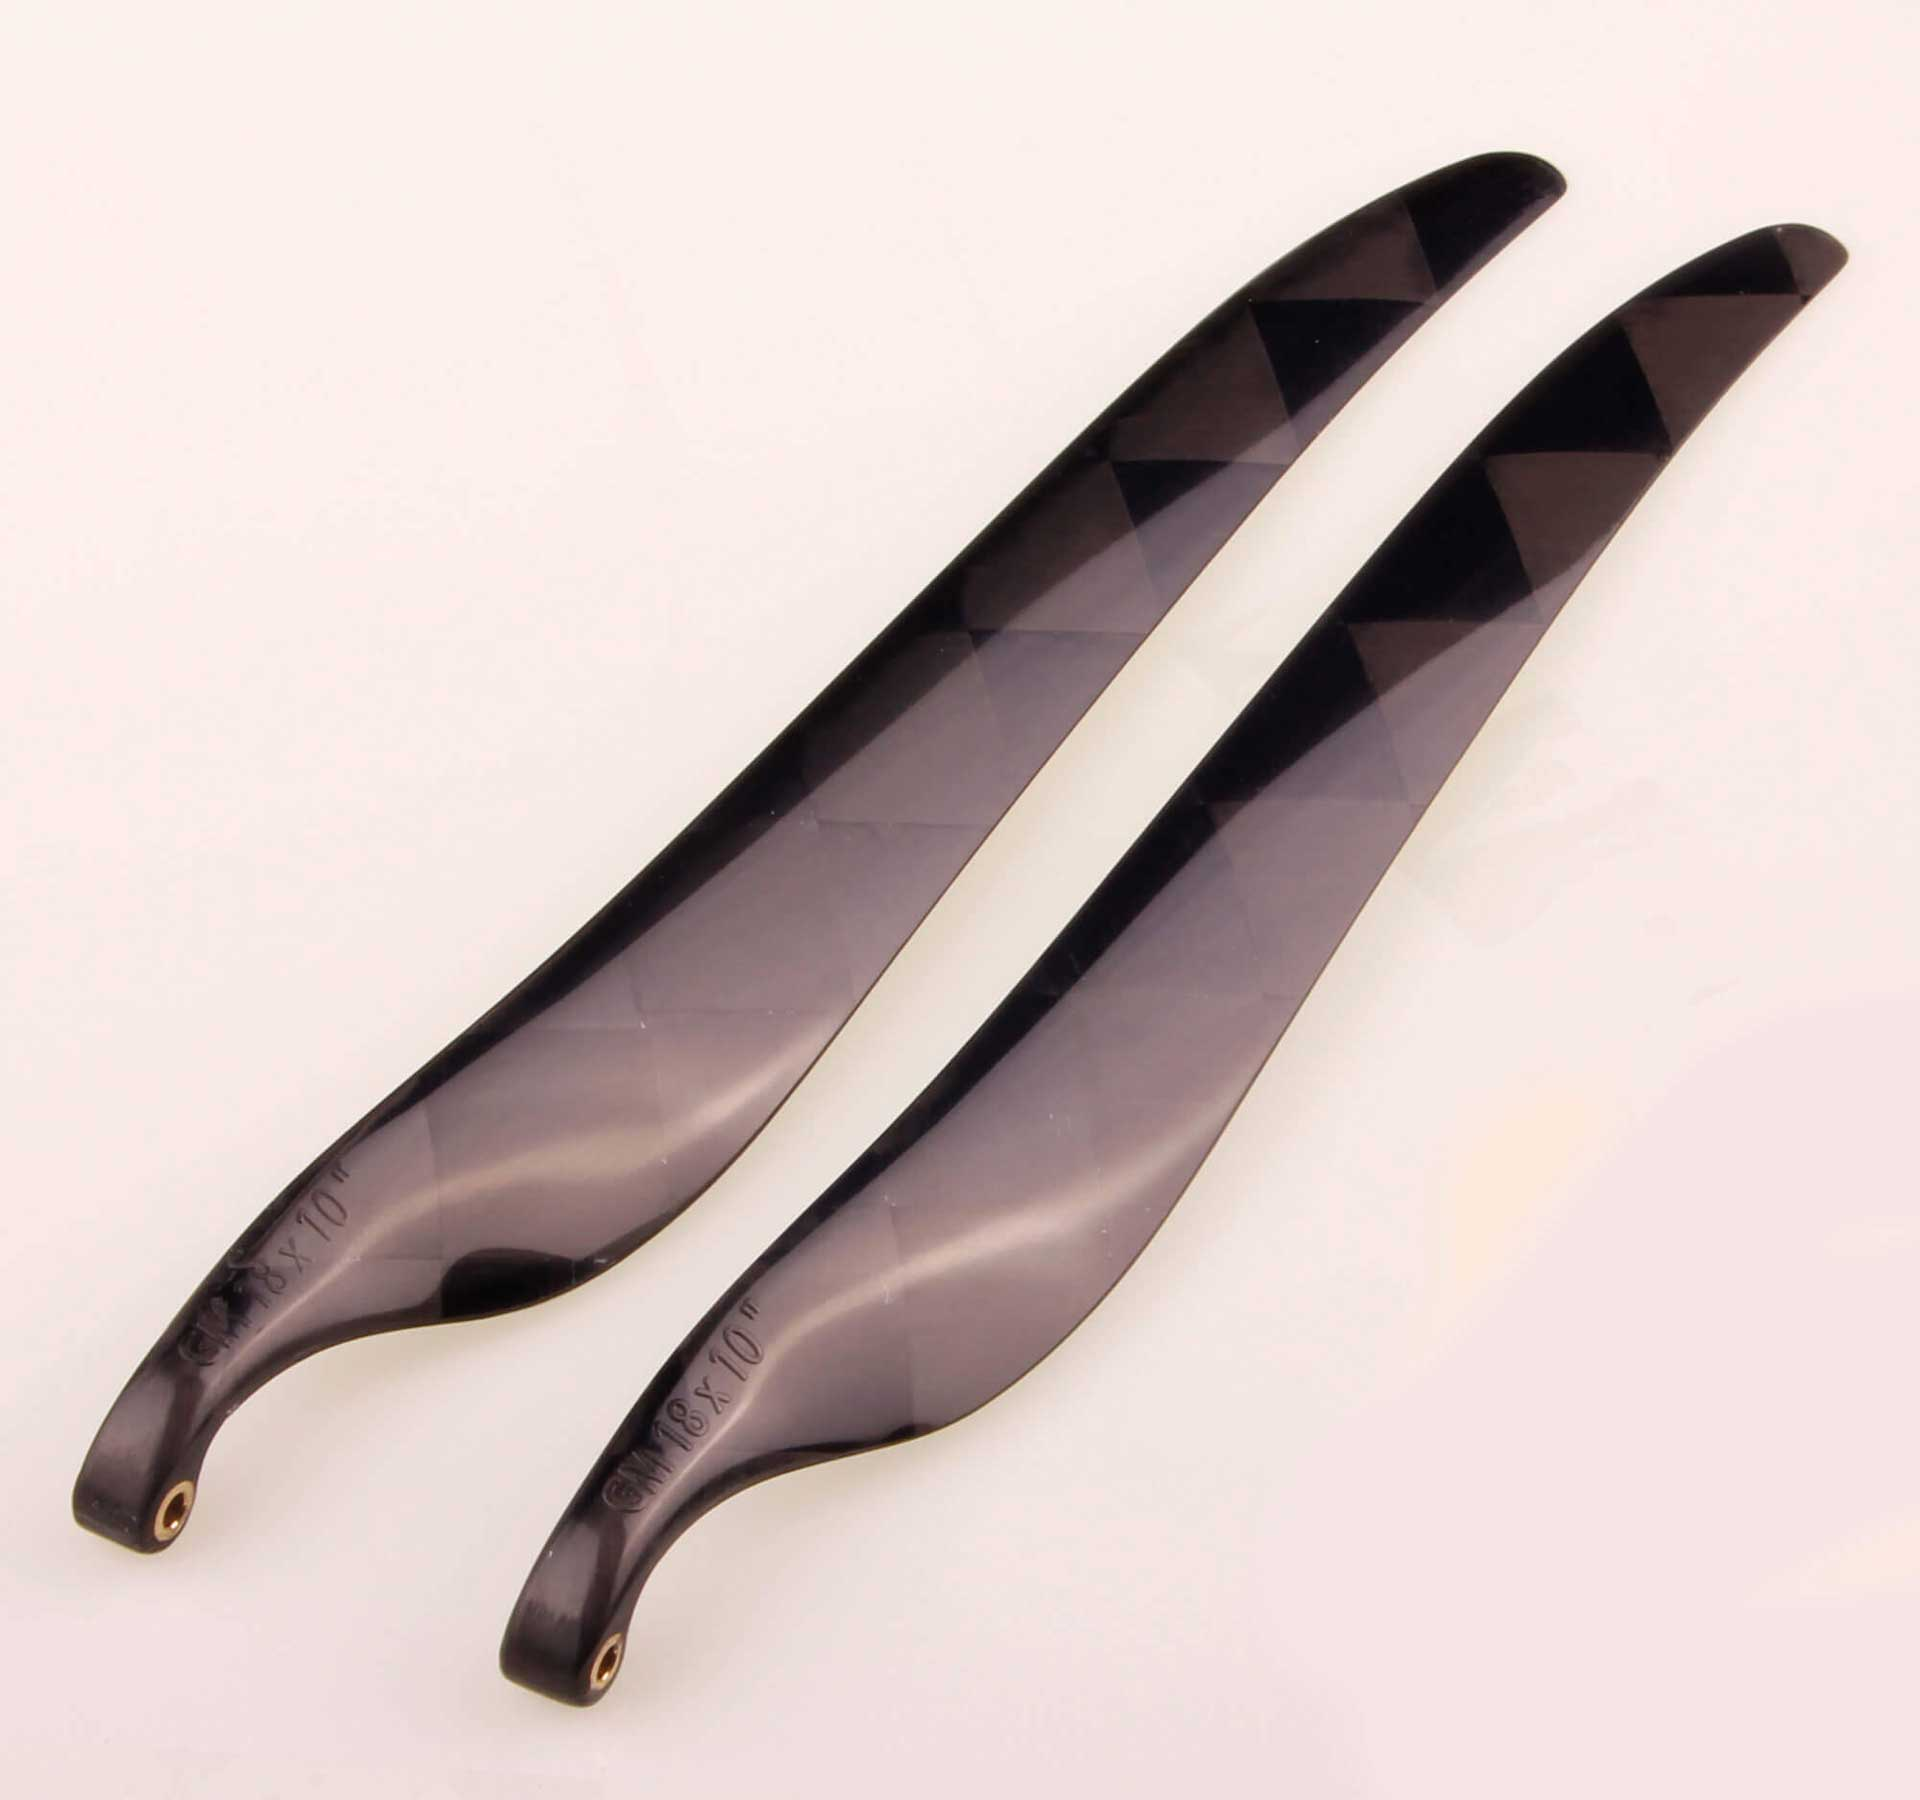 GM Propellers Folding propeller 18x10 Carbon black 1 pair